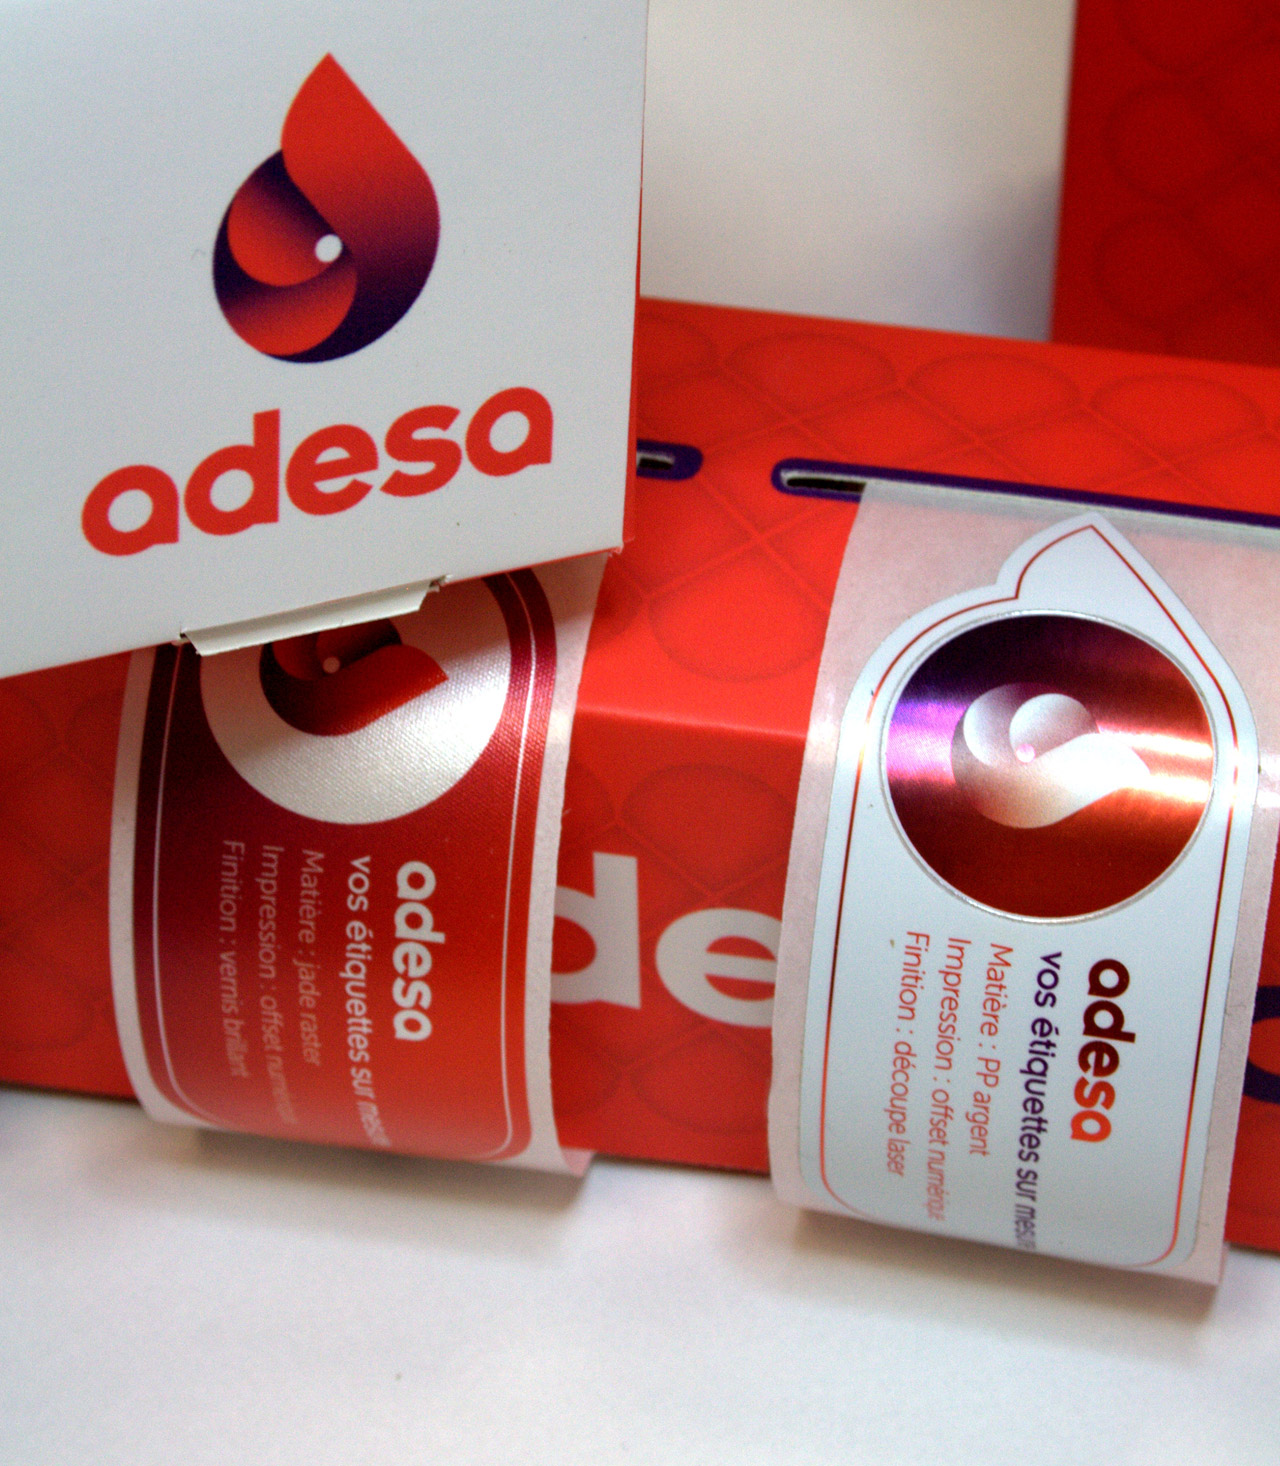 adesa-packaging-adesabox-situation-3-creation-communication-caconcept-alexis-cretin-graphiste